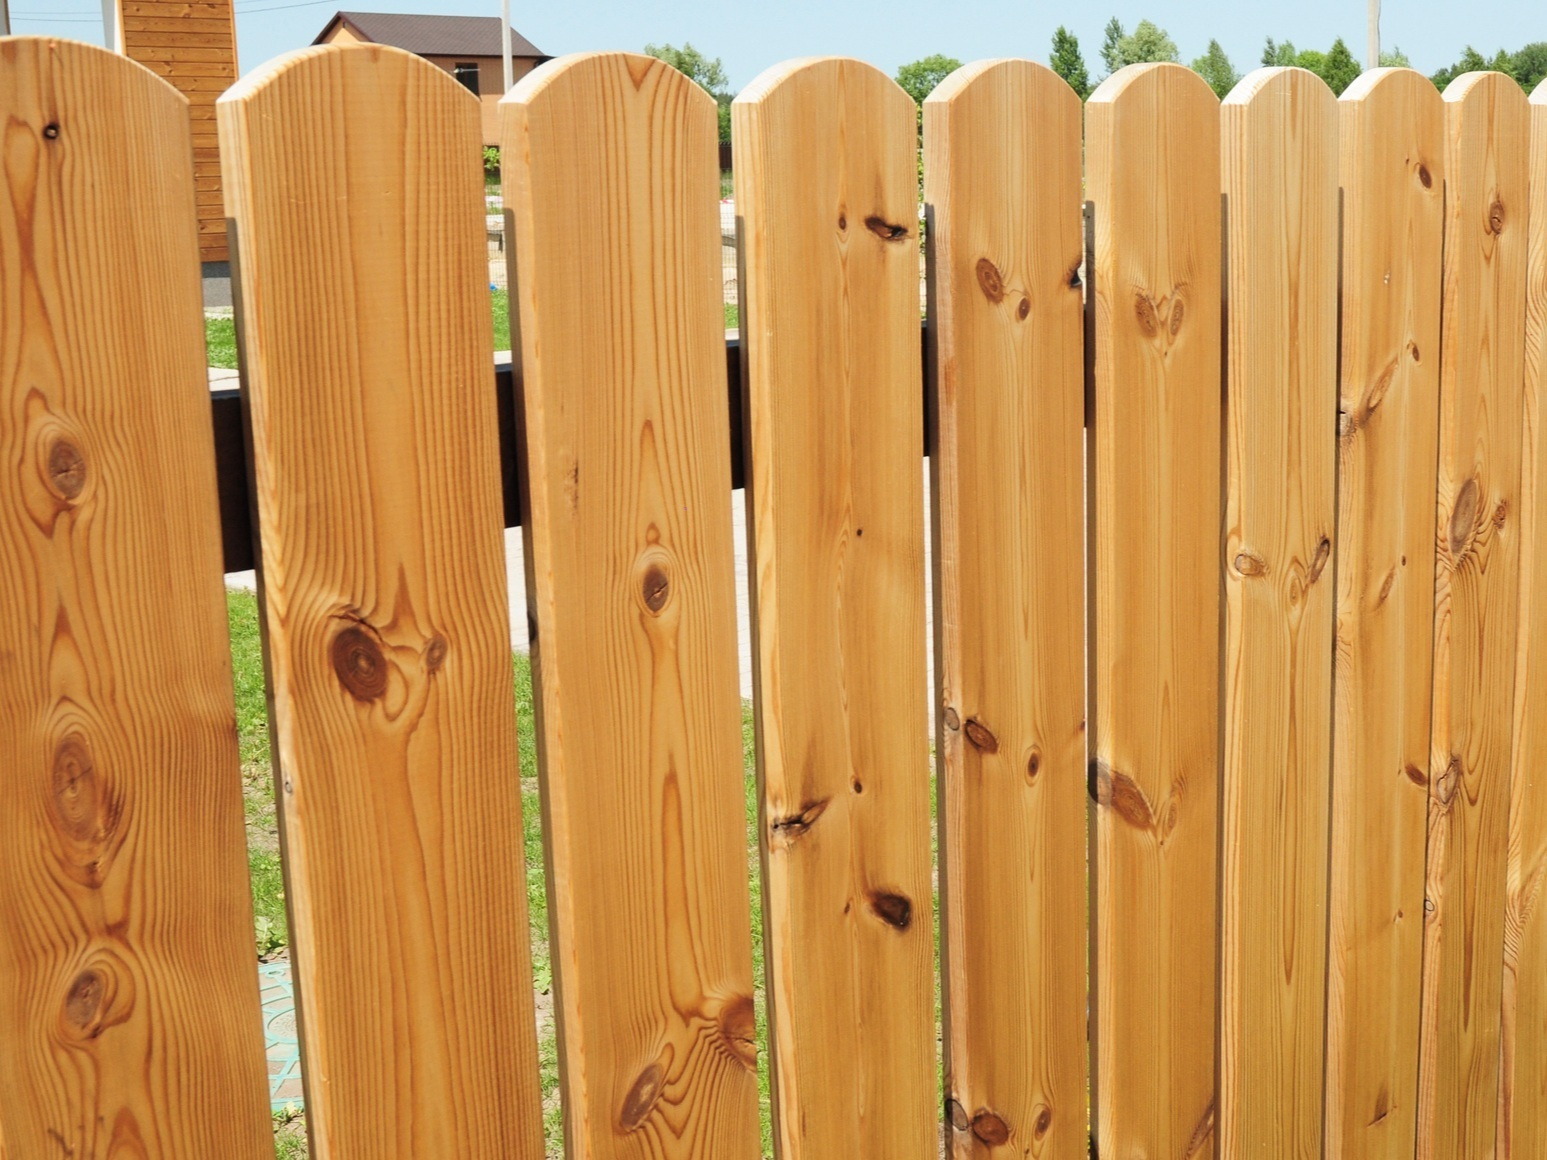 Garden Fencing - From privacy, panel fences to decorative picket fences. We can build and install any type of garden fence timely and tidily